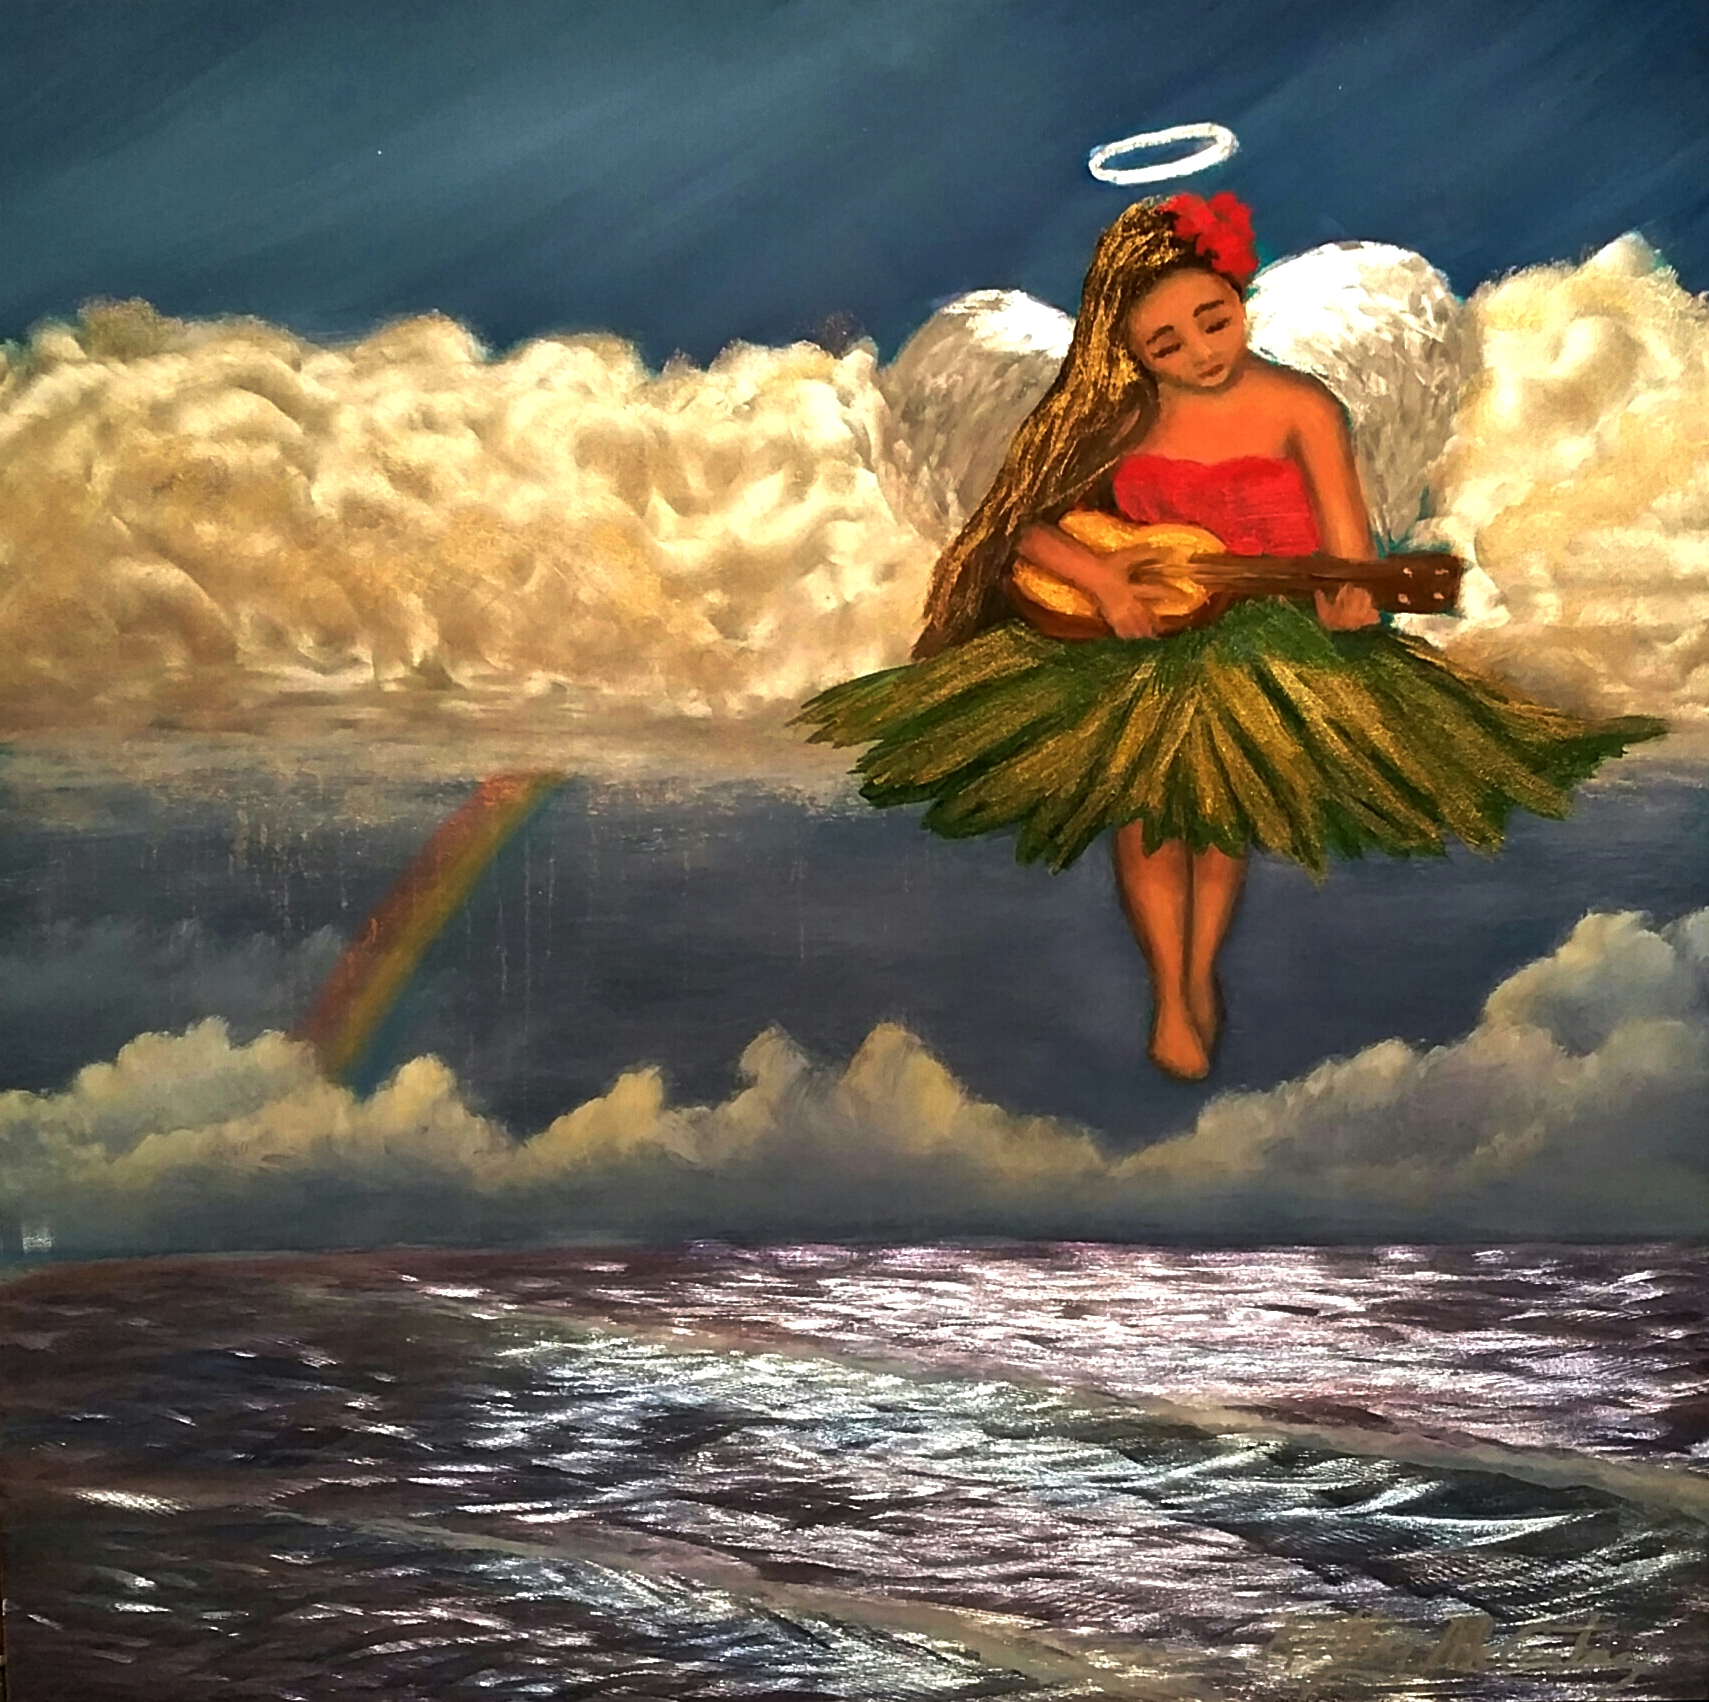 """Tears in Heaven – When Hula Angles Play"" is 12""x12"" $595.00 Grinded, etched metal, acrylic paint and oil paint, automotive clear coat"